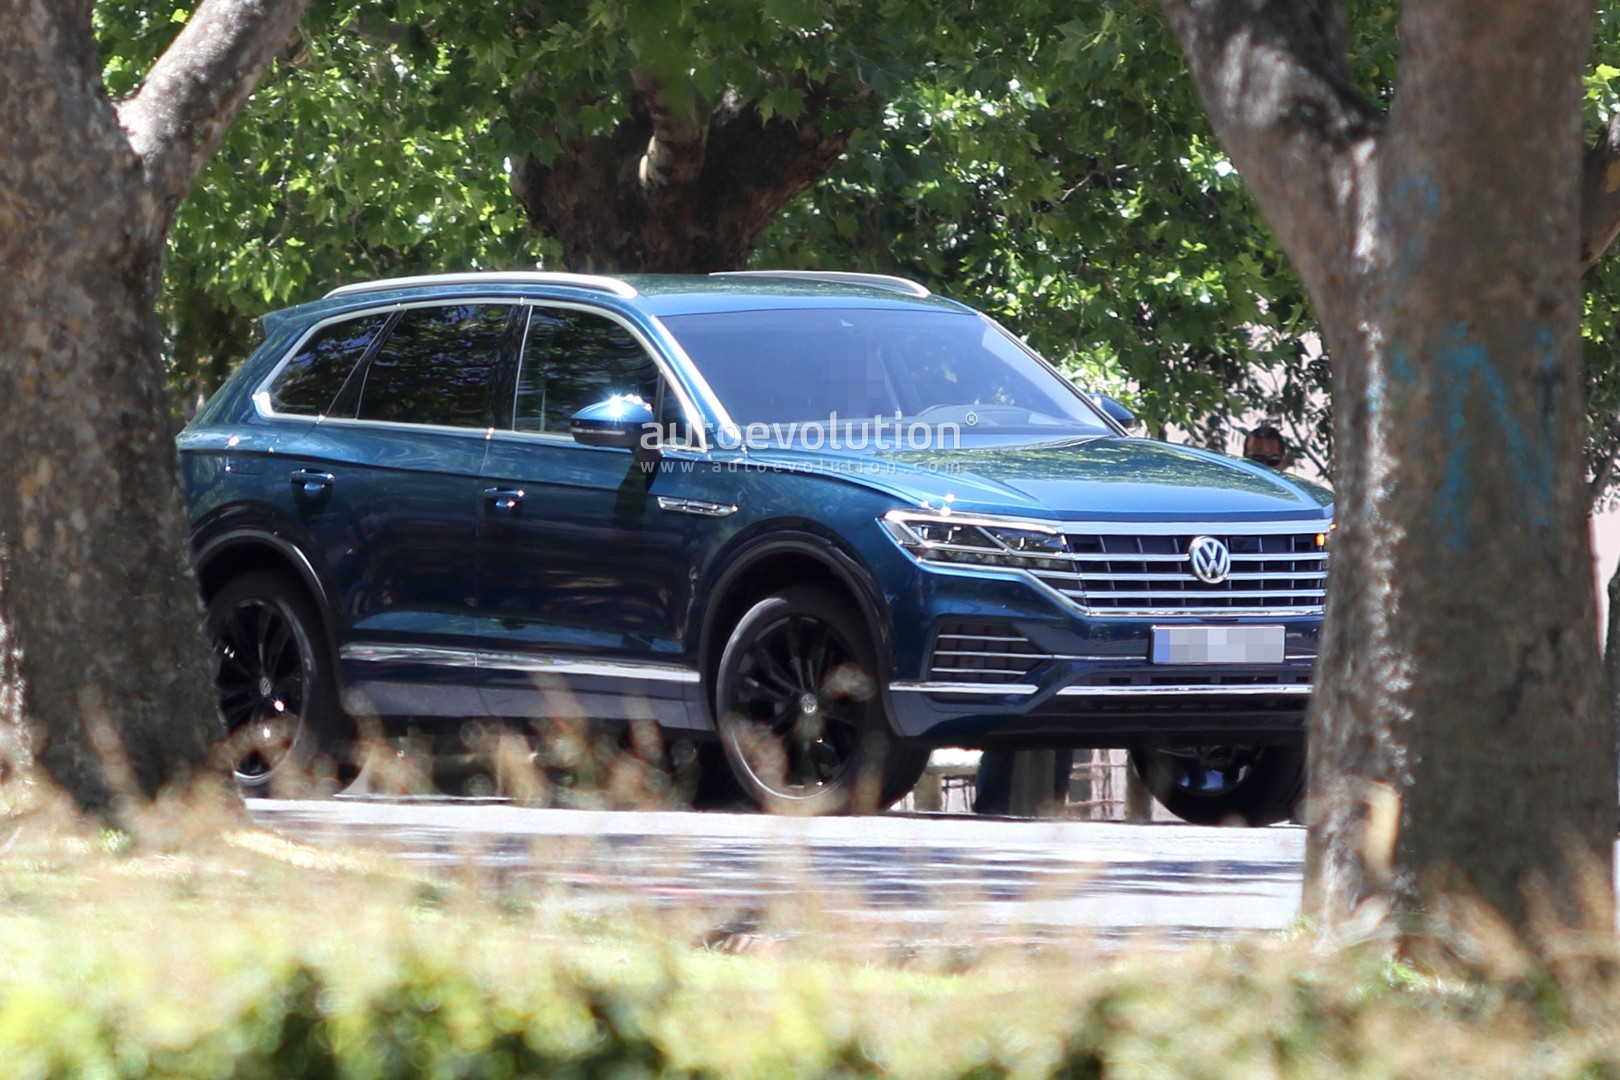 2019 volkswagen touareg revealed in full by latest spy photos autoevolution. Black Bedroom Furniture Sets. Home Design Ideas